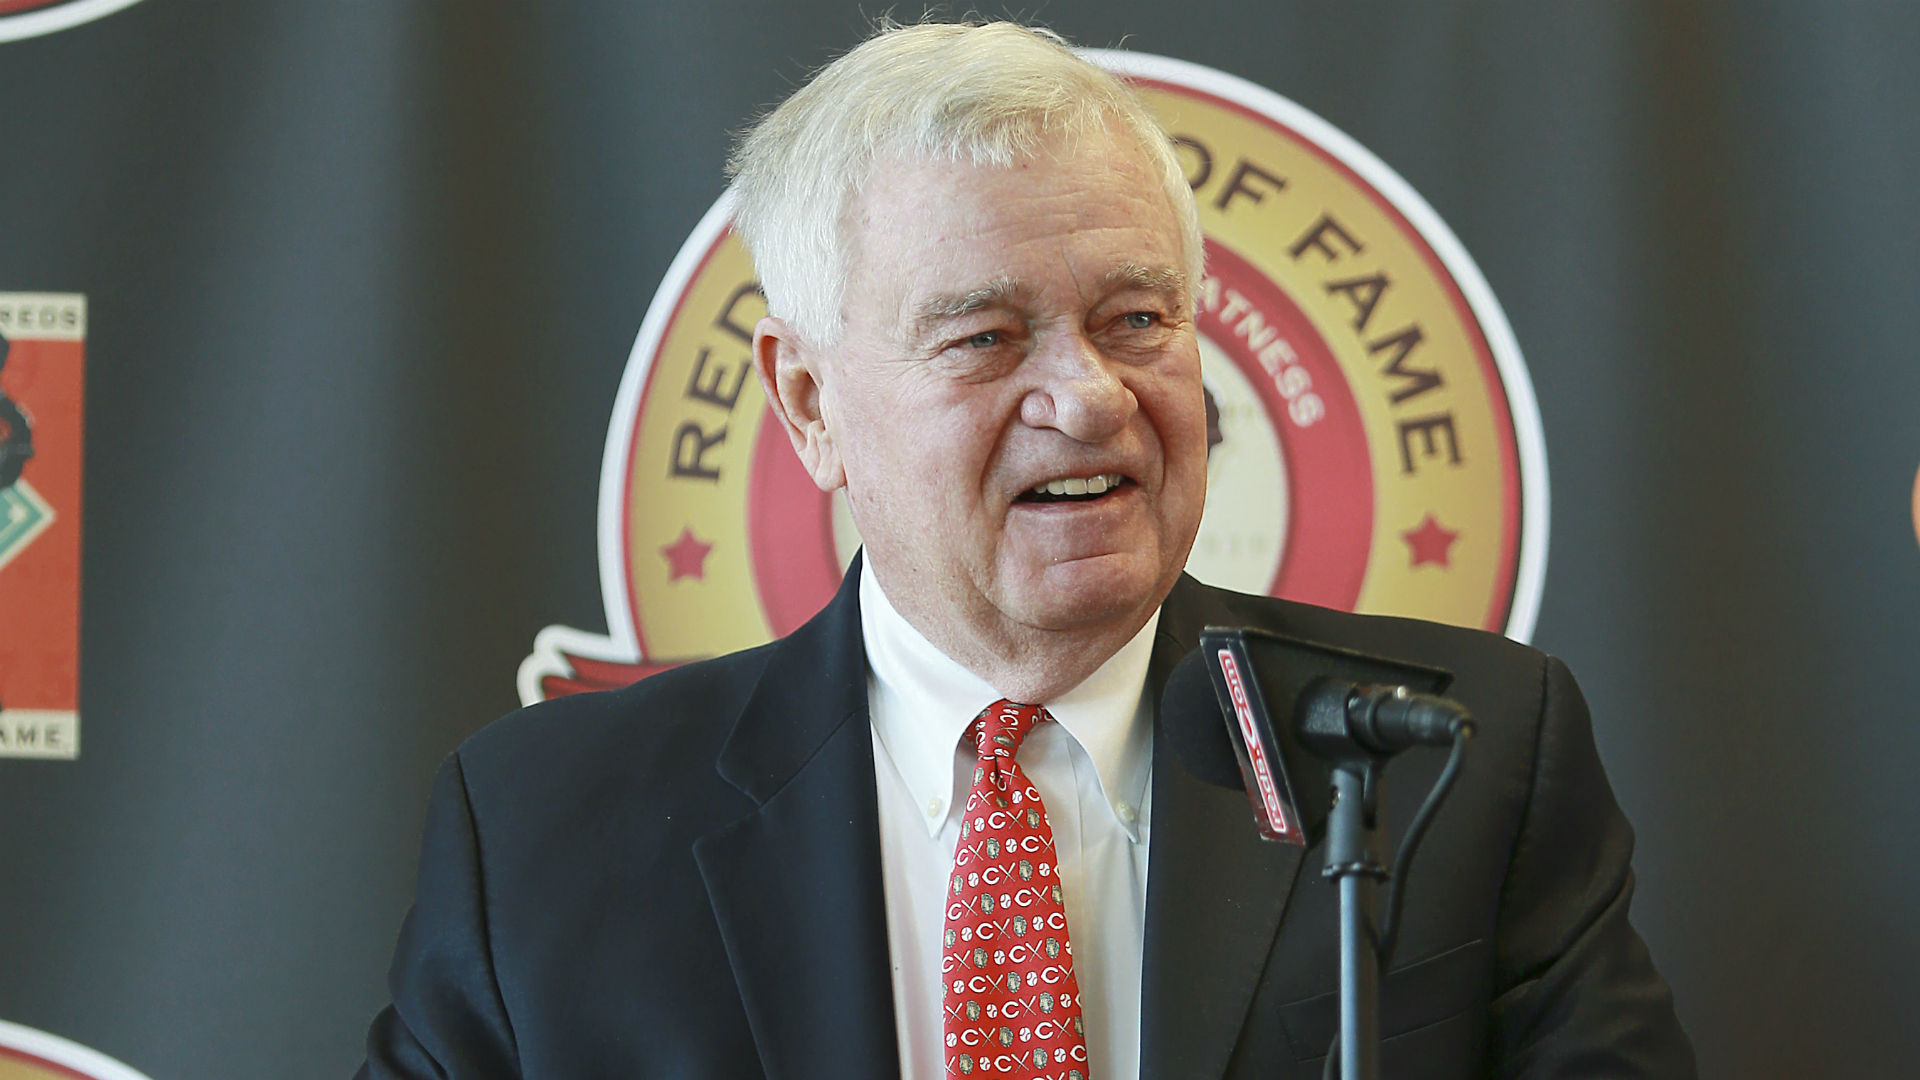 Reds' owner: Talk about NL adopting DH rule 'blown out of ...